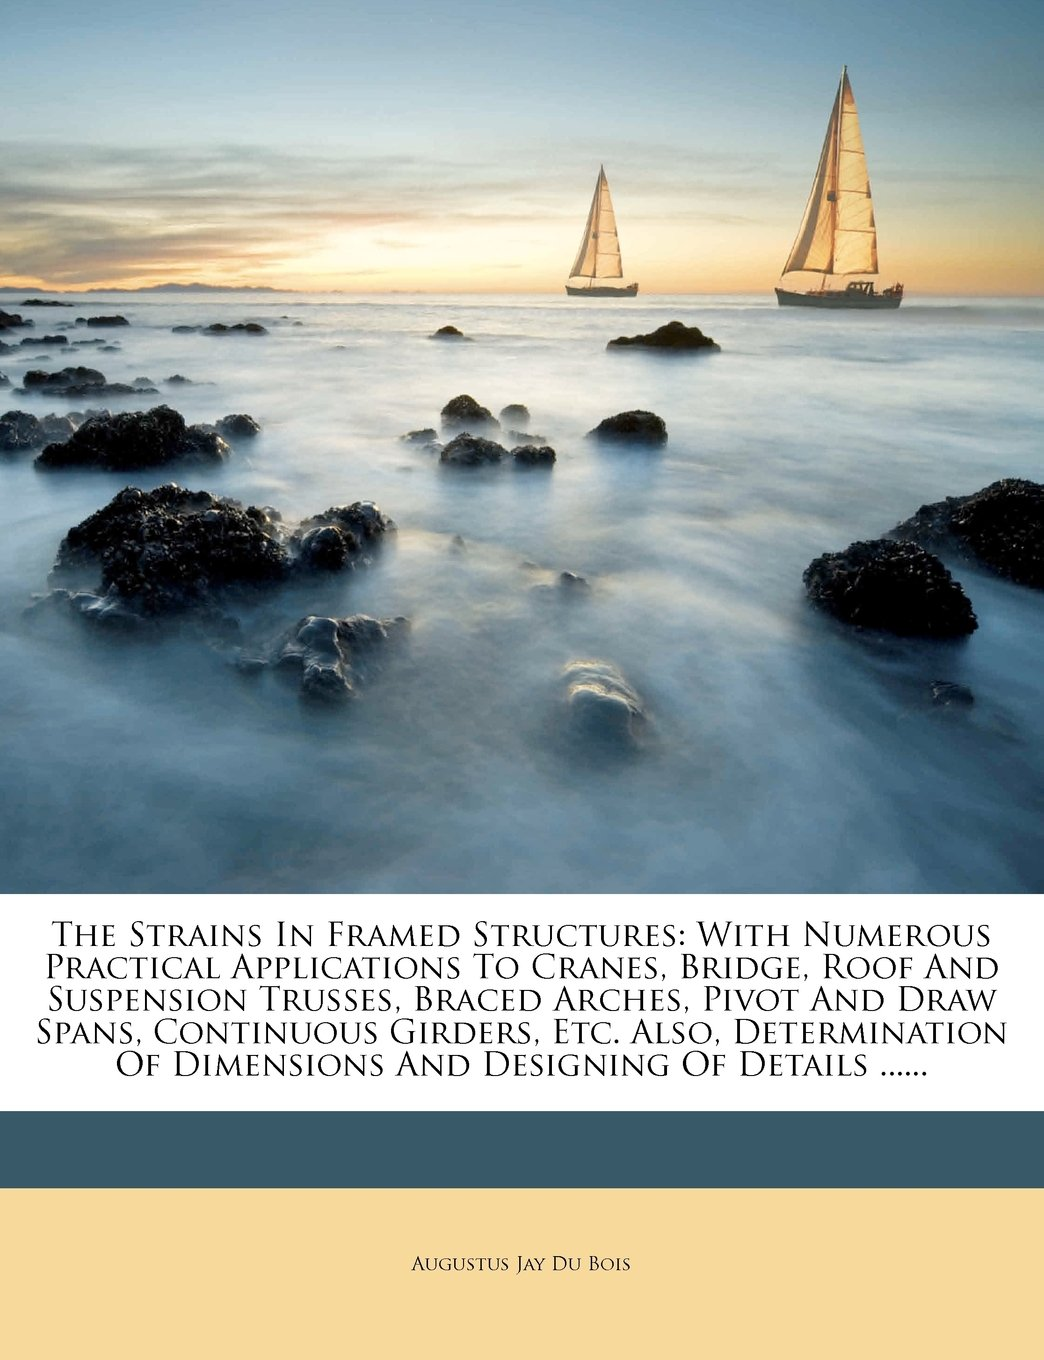 The Strains In Framed Structures: With Numerous Practical Applications To Cranes, Bridge, Roof And Suspension Trusses, Braced Arches, Pivot And Draw ... Of Dimensions And Designing Of Details ...... ebook